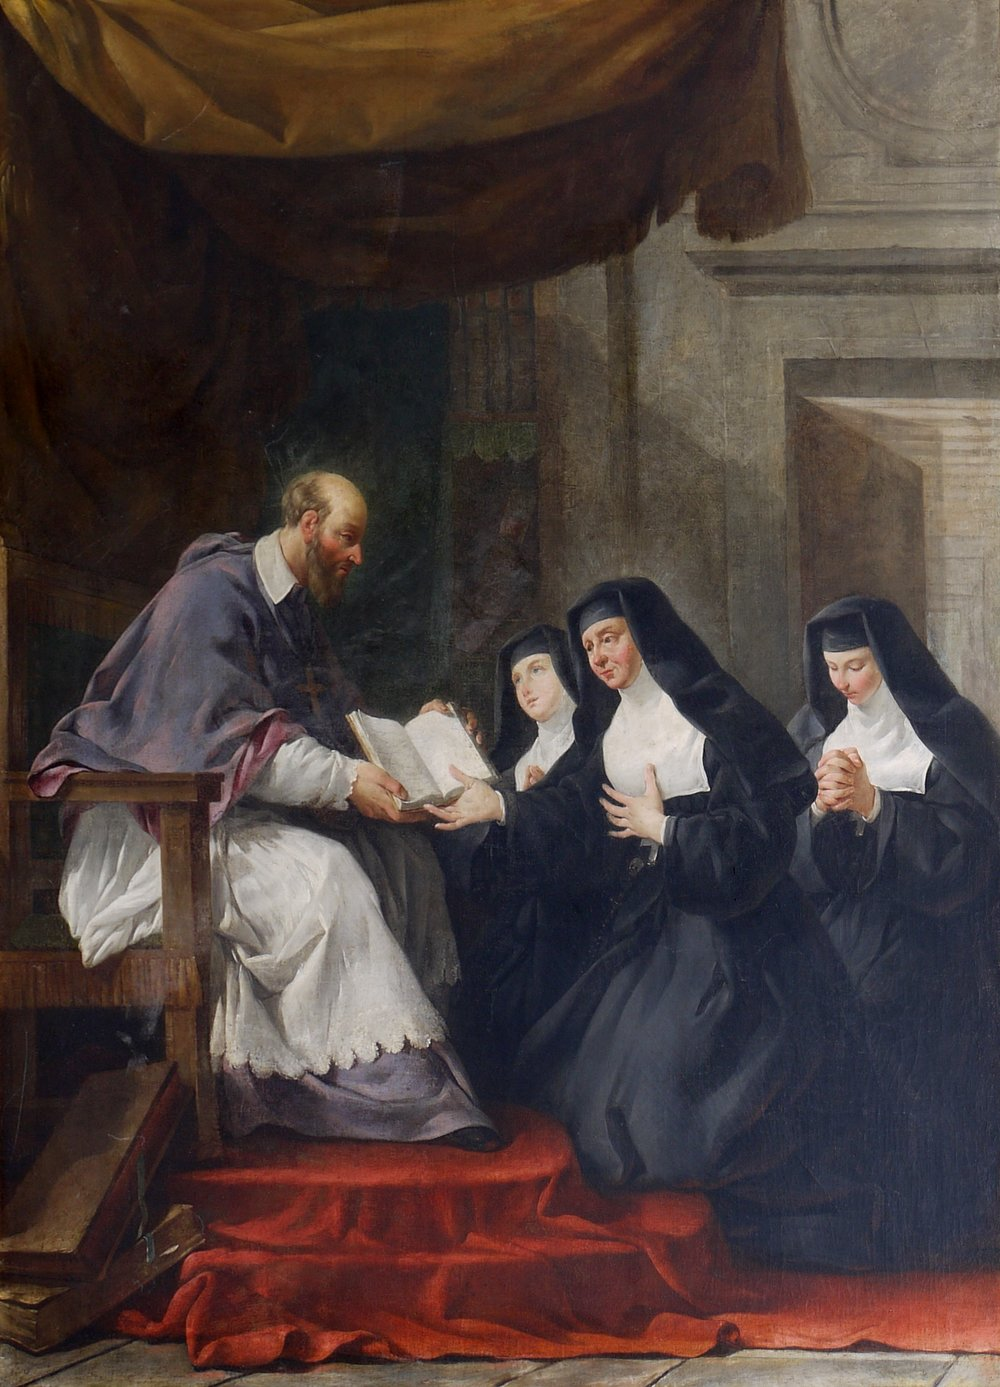 St. Francis De Sales giving St. Jane de Chantal the Rule of the Order of the Visitation. Image in the Public Domain.